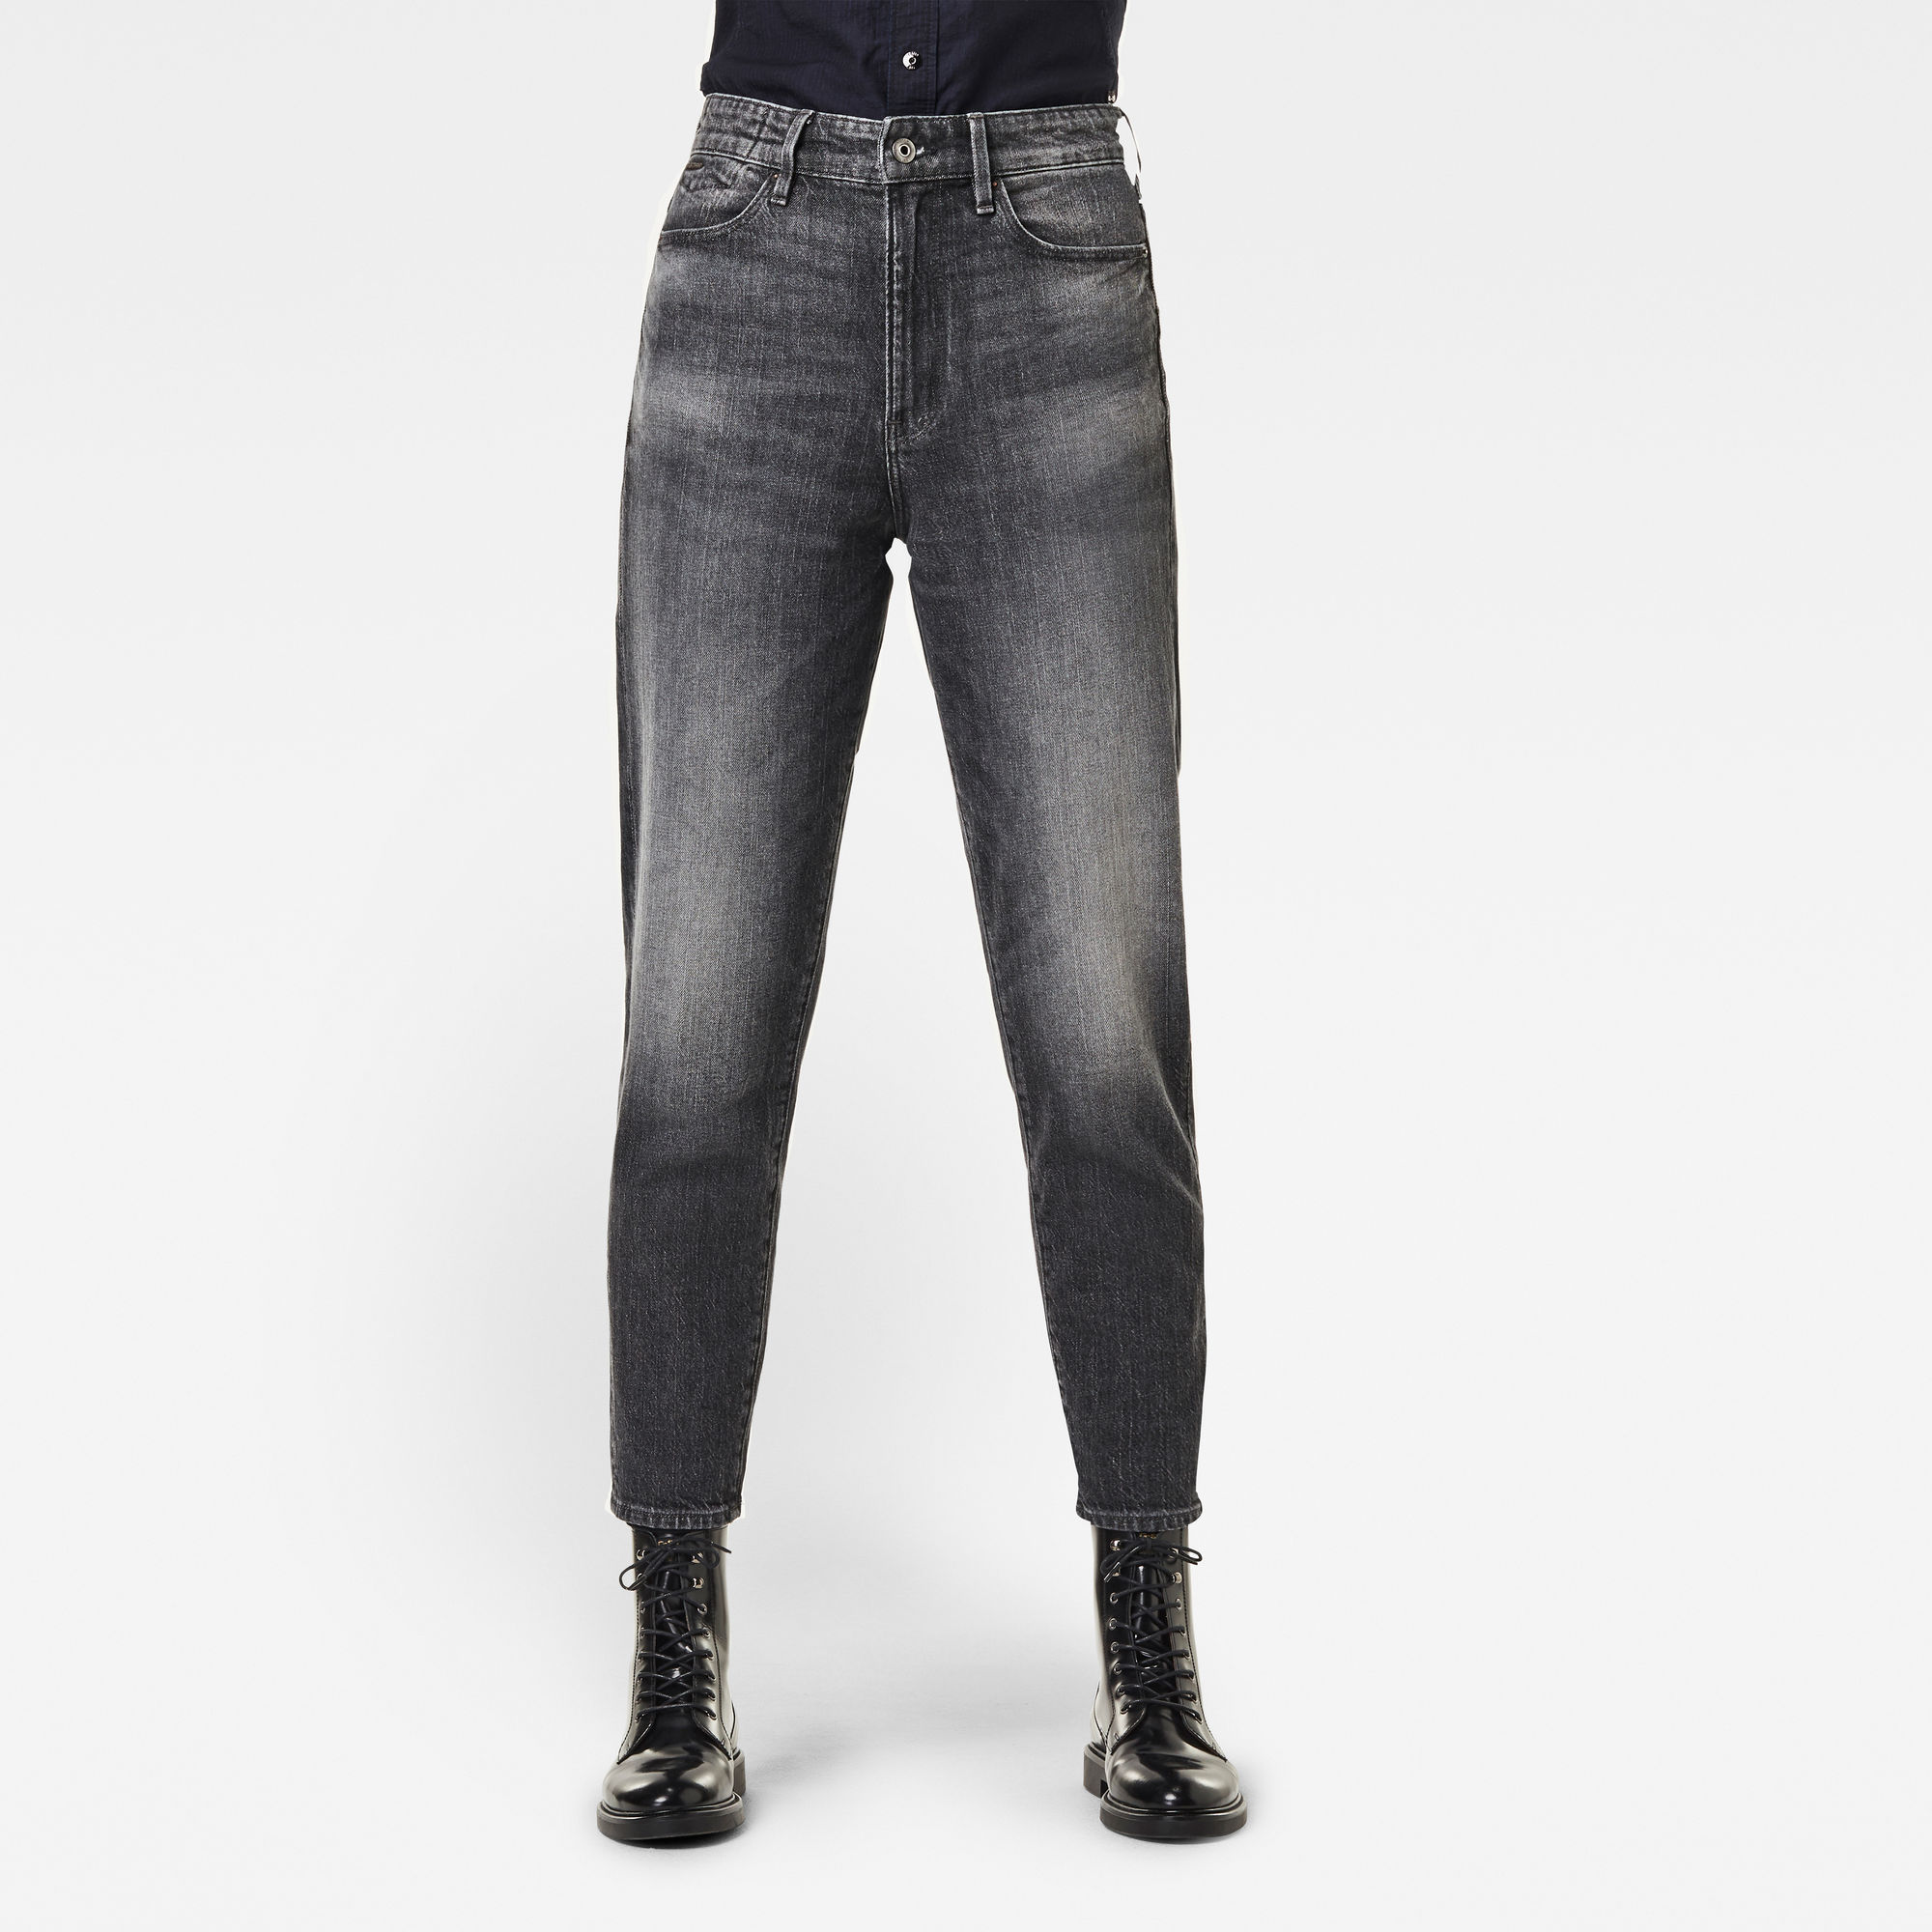 G-Star RAW Dames Janeh Ultra High Mom Ankle Jeans Zwart